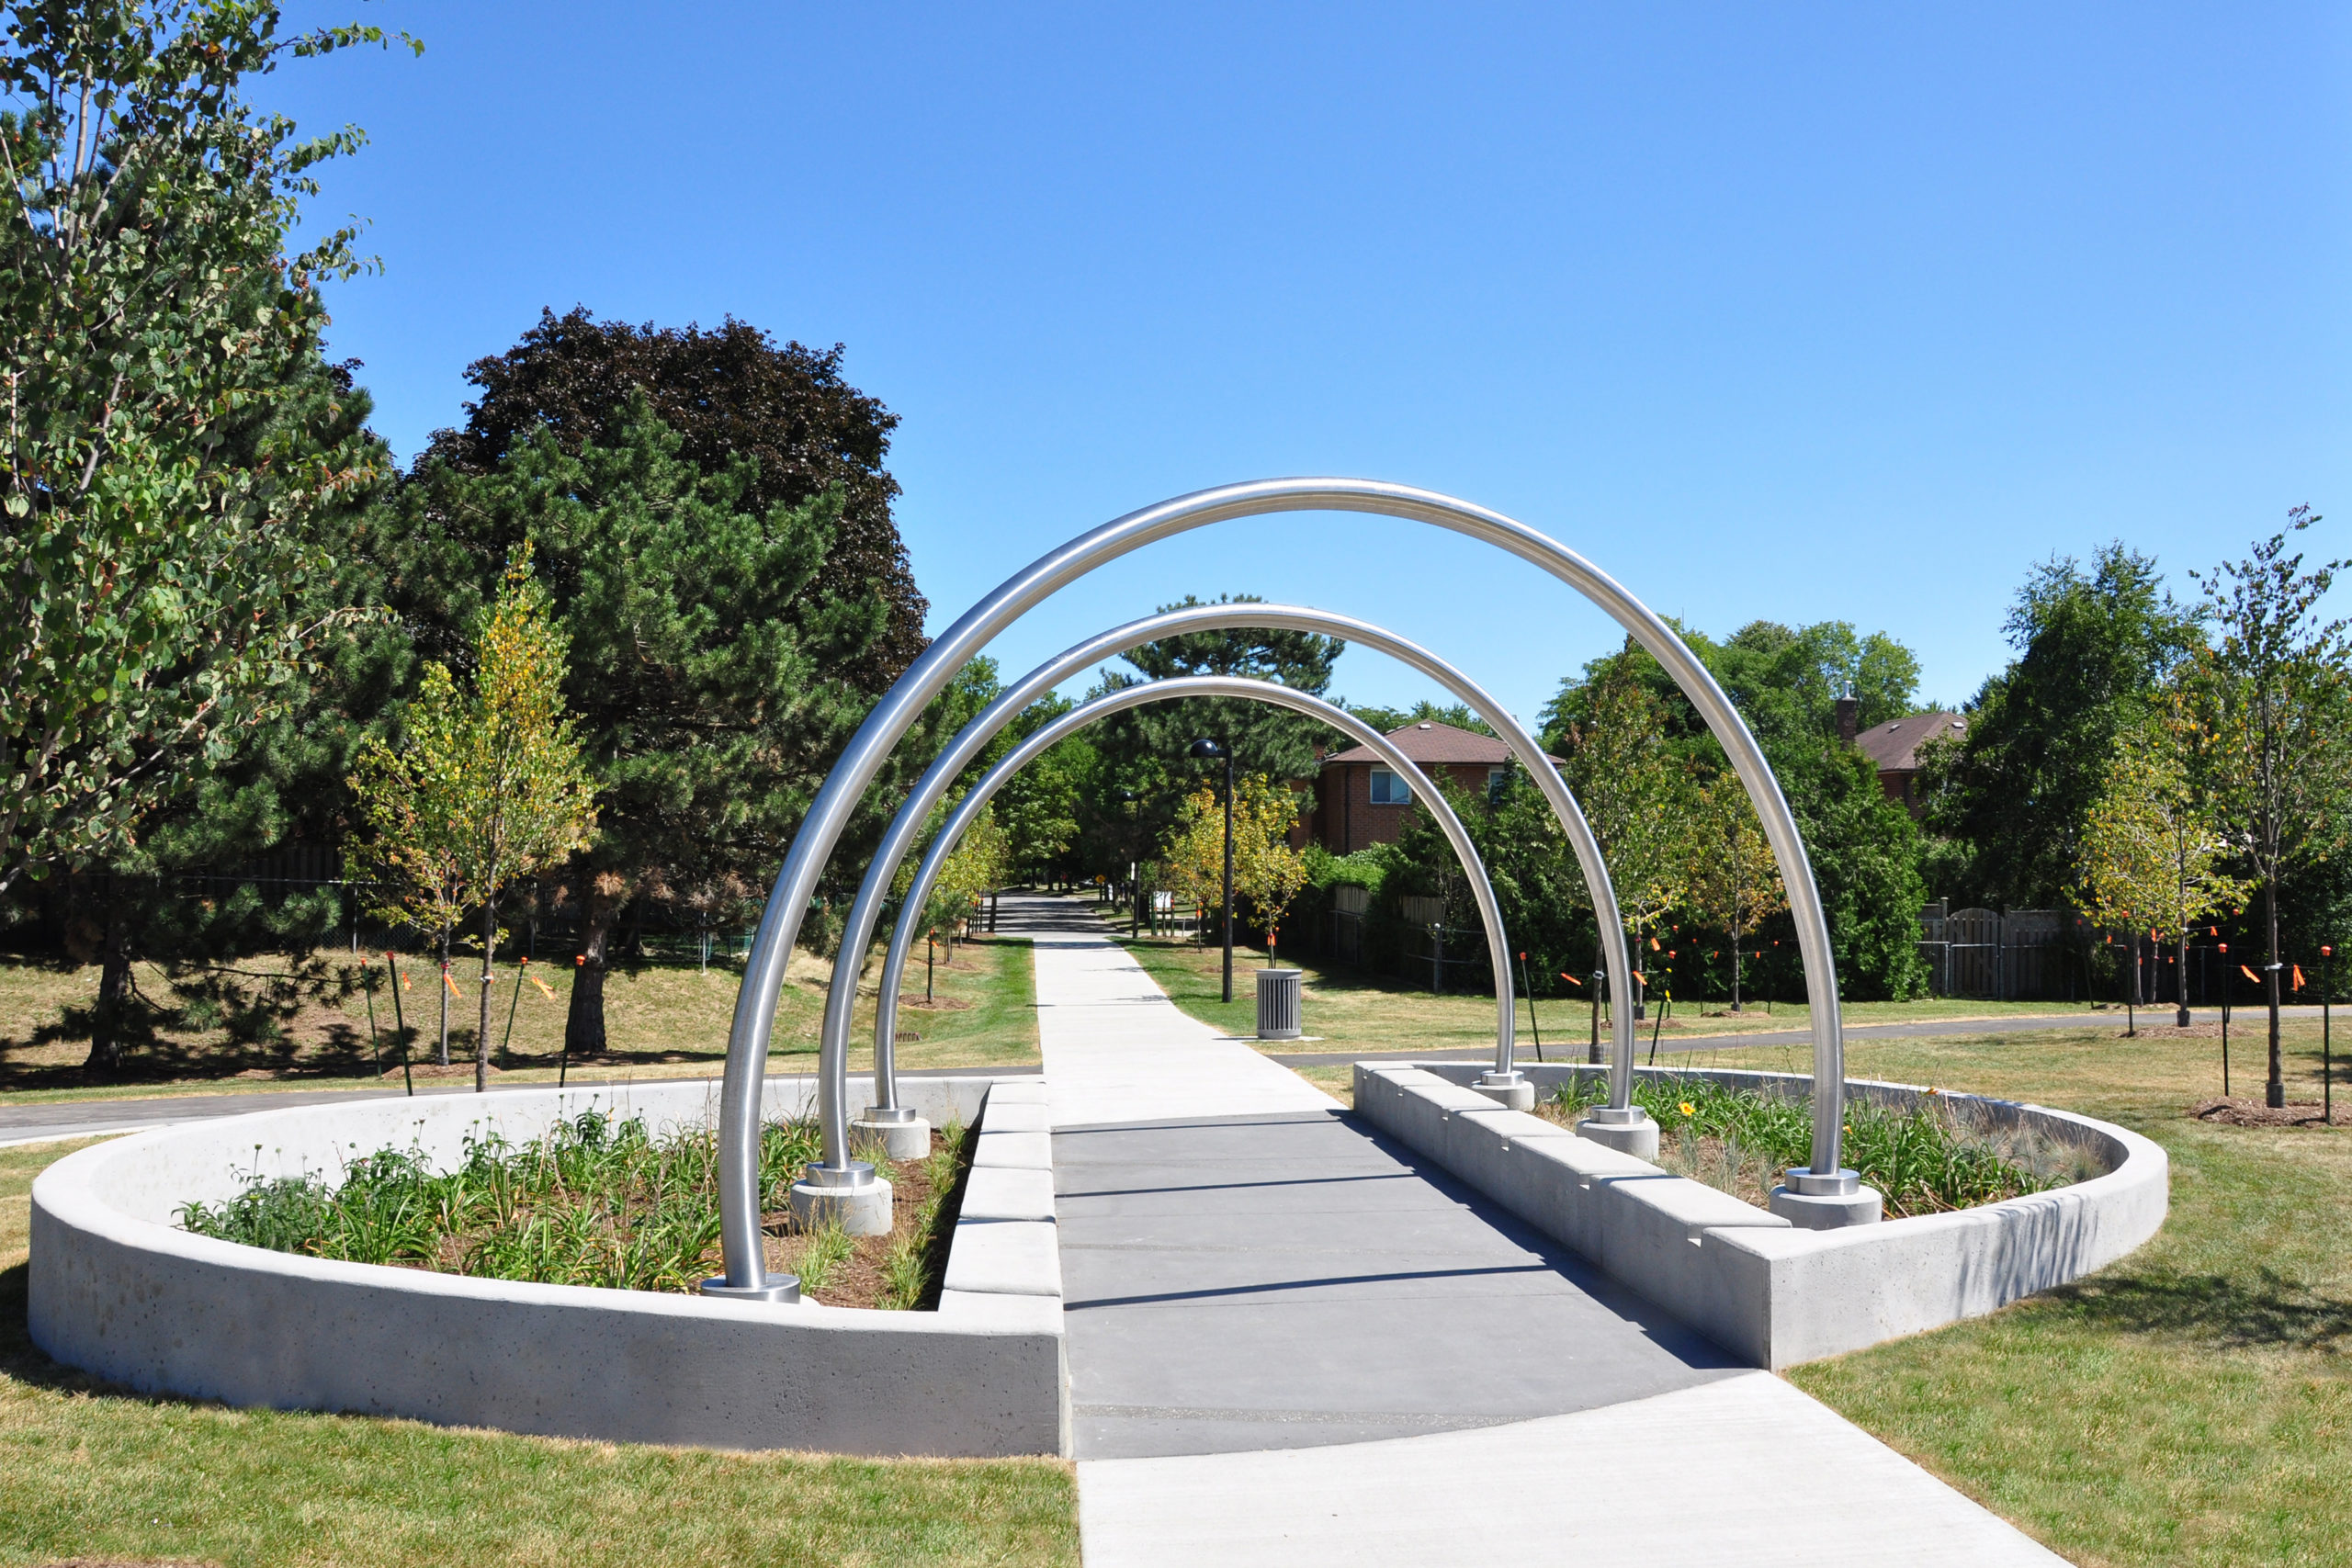 Pathway into park with metal loops.